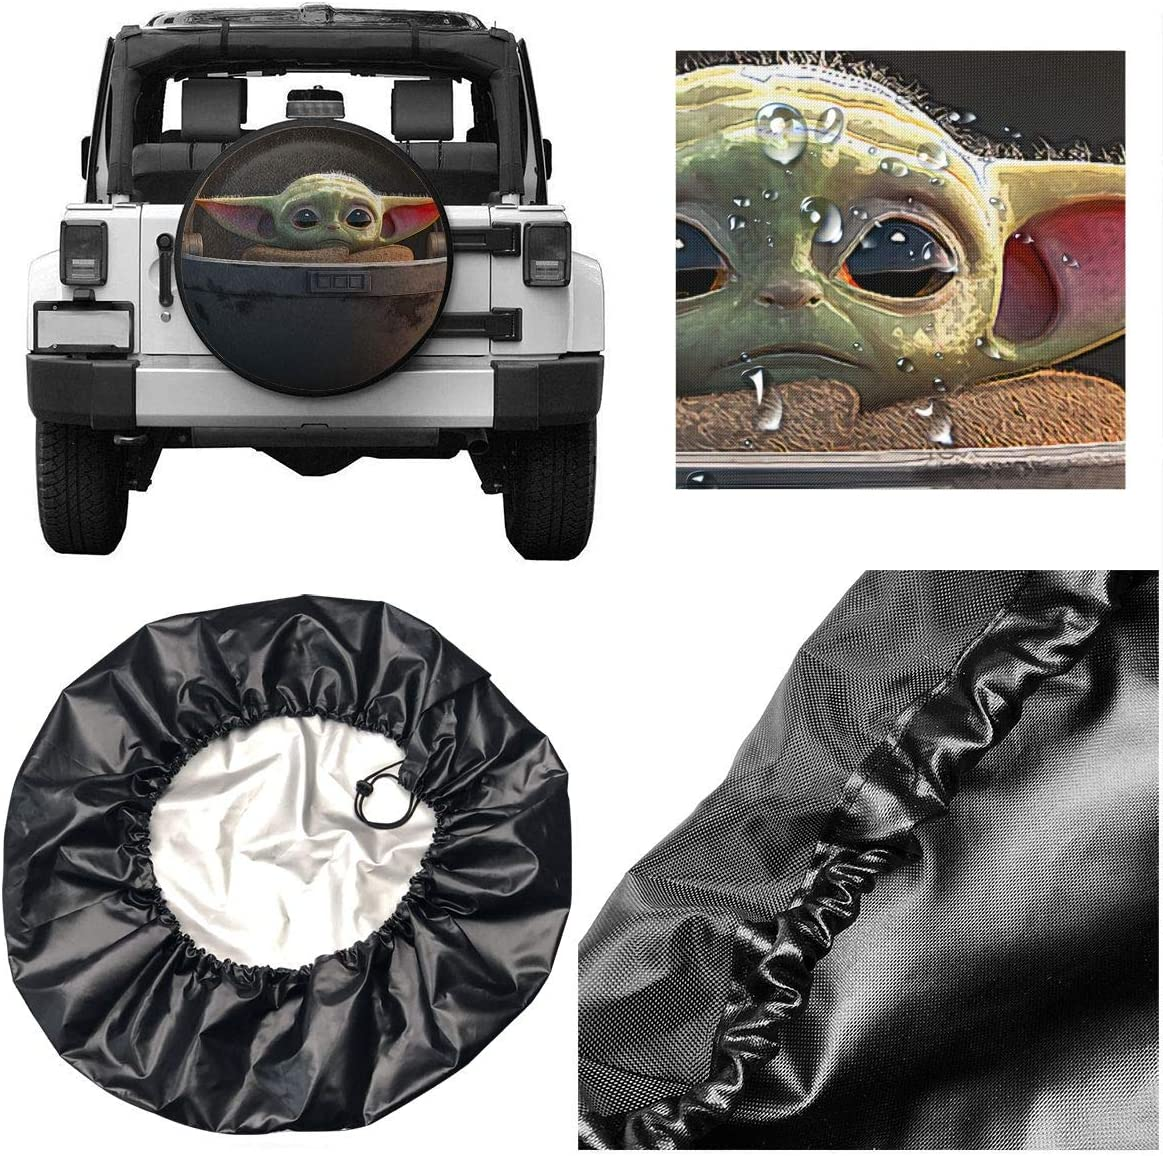 C-CASE Ba-by Y-oda Spare Tire Cover Polyester Universal Waterproof Sunscreen Wheel Covers for Jeep Trailer RV SUV Truck and Many Vehicles 14 Inch